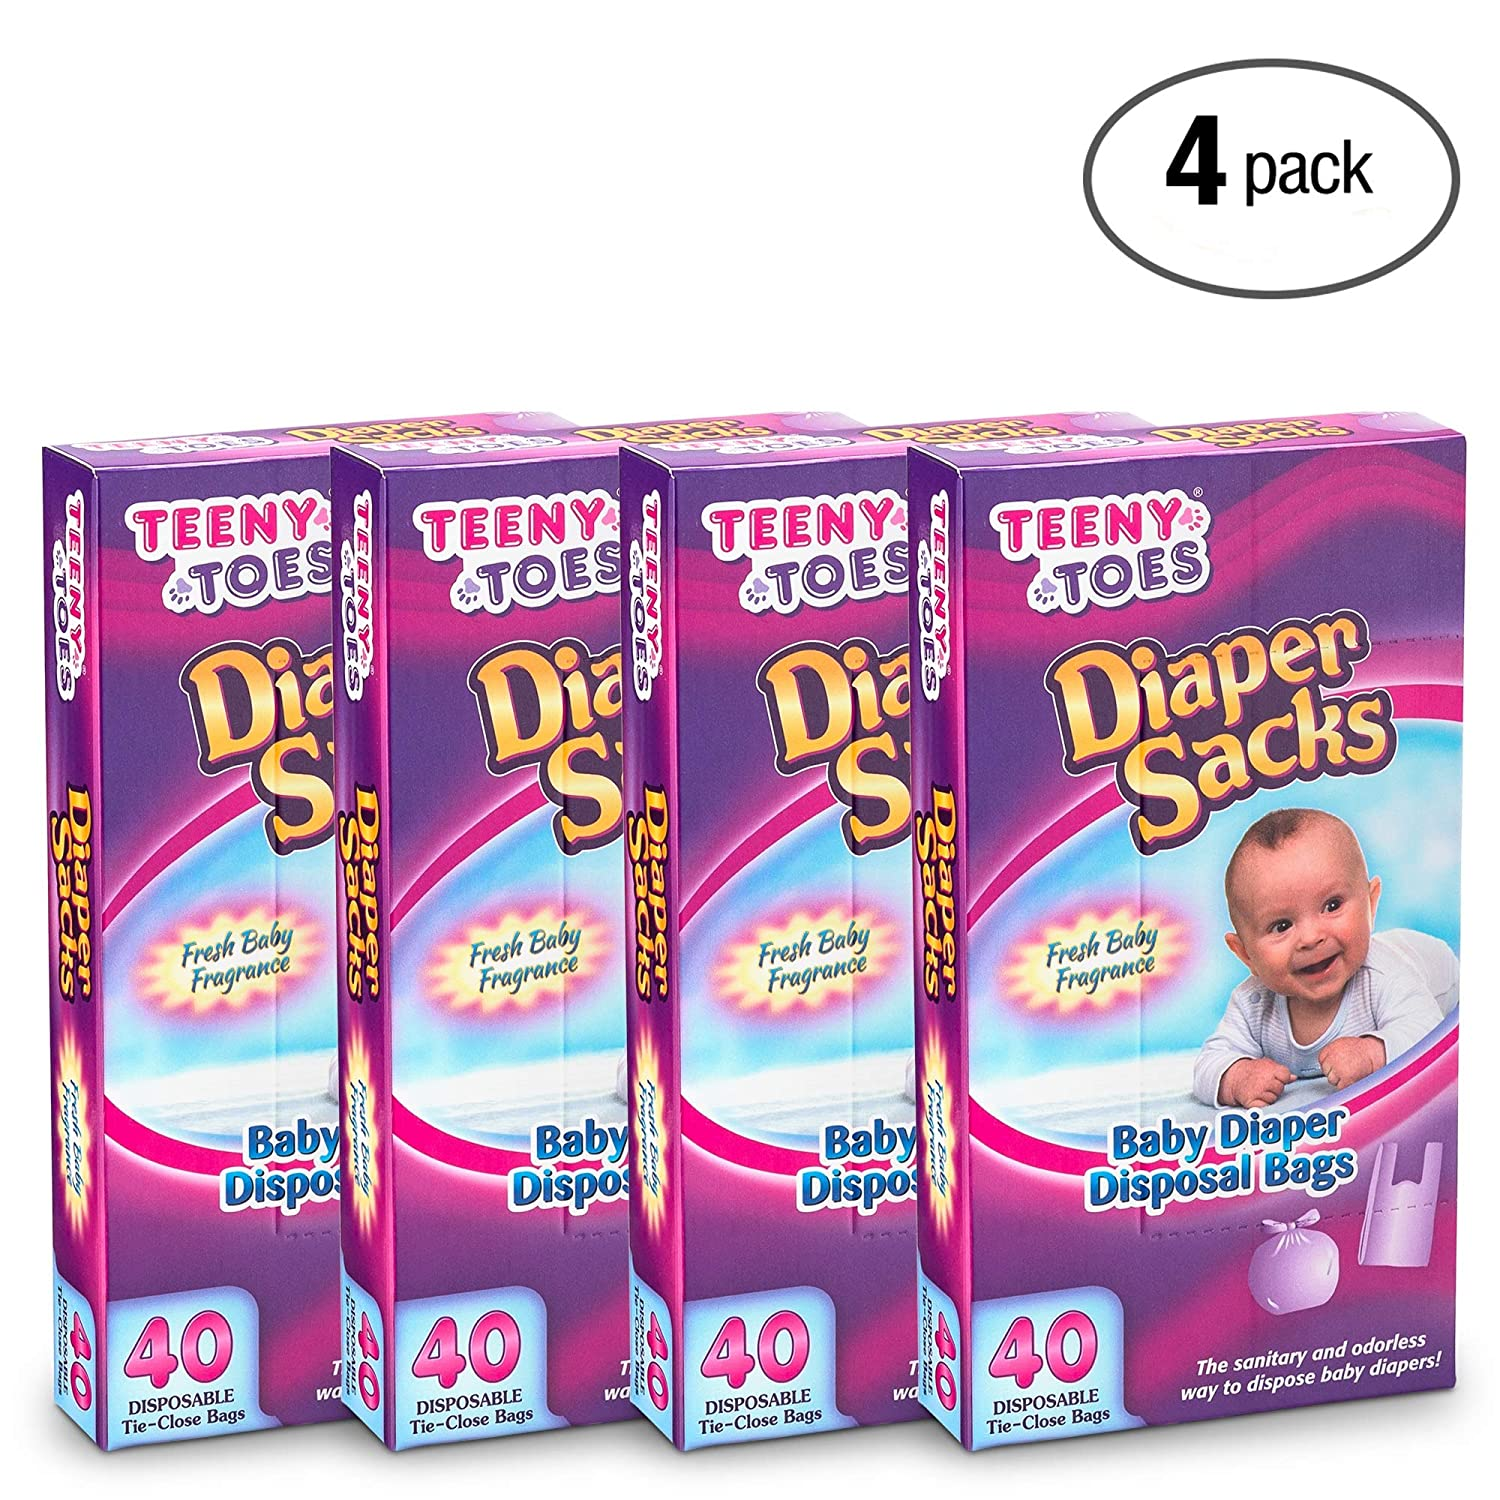 Teeny Toes Baby Disposable Diaper Sacks, 40 Count KCH Corporation 5001